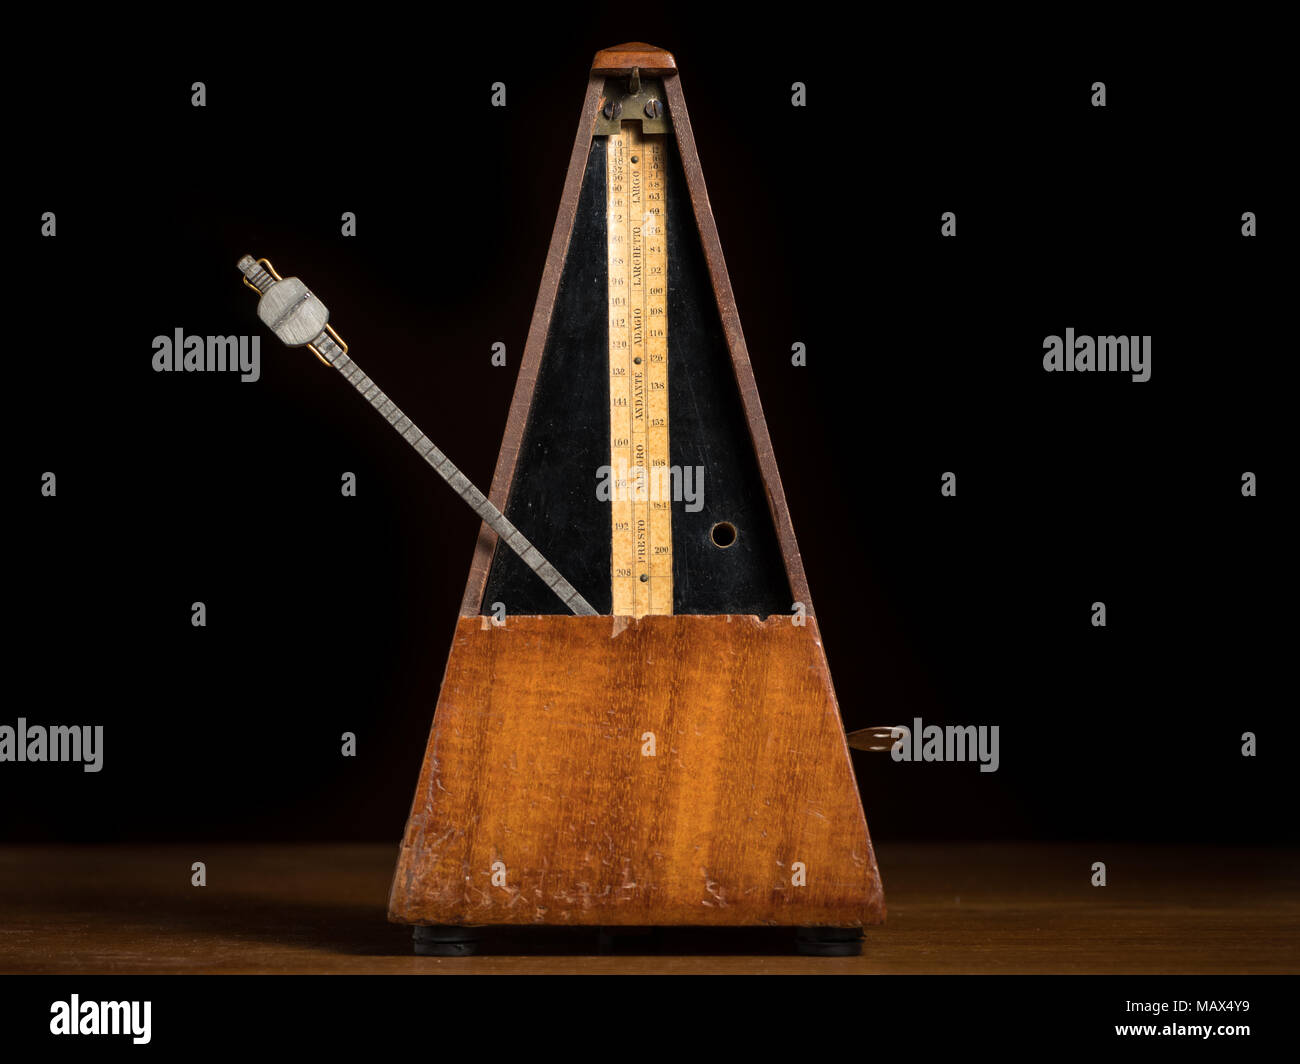 Detail of an old mechanic musical metronome, scale showing the various tempos, pendulum left - Stock Image